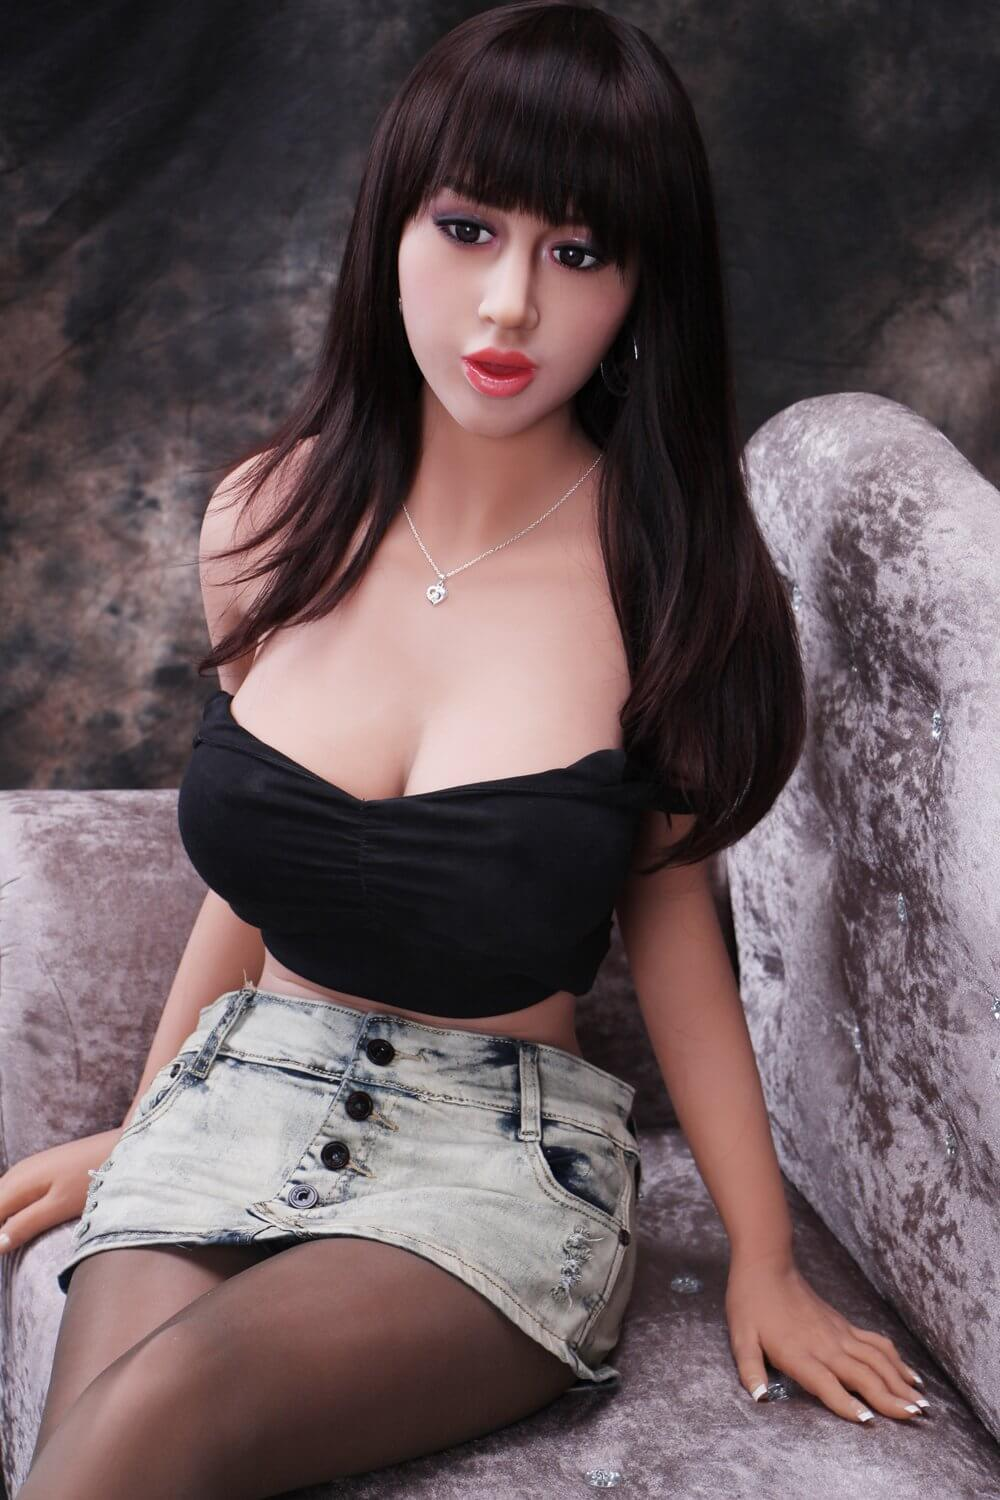 165cm 5.41ft Lifelike Sex Doll With 3 Entries G Cup Adult Real Doll Abby-sexdollslab.com